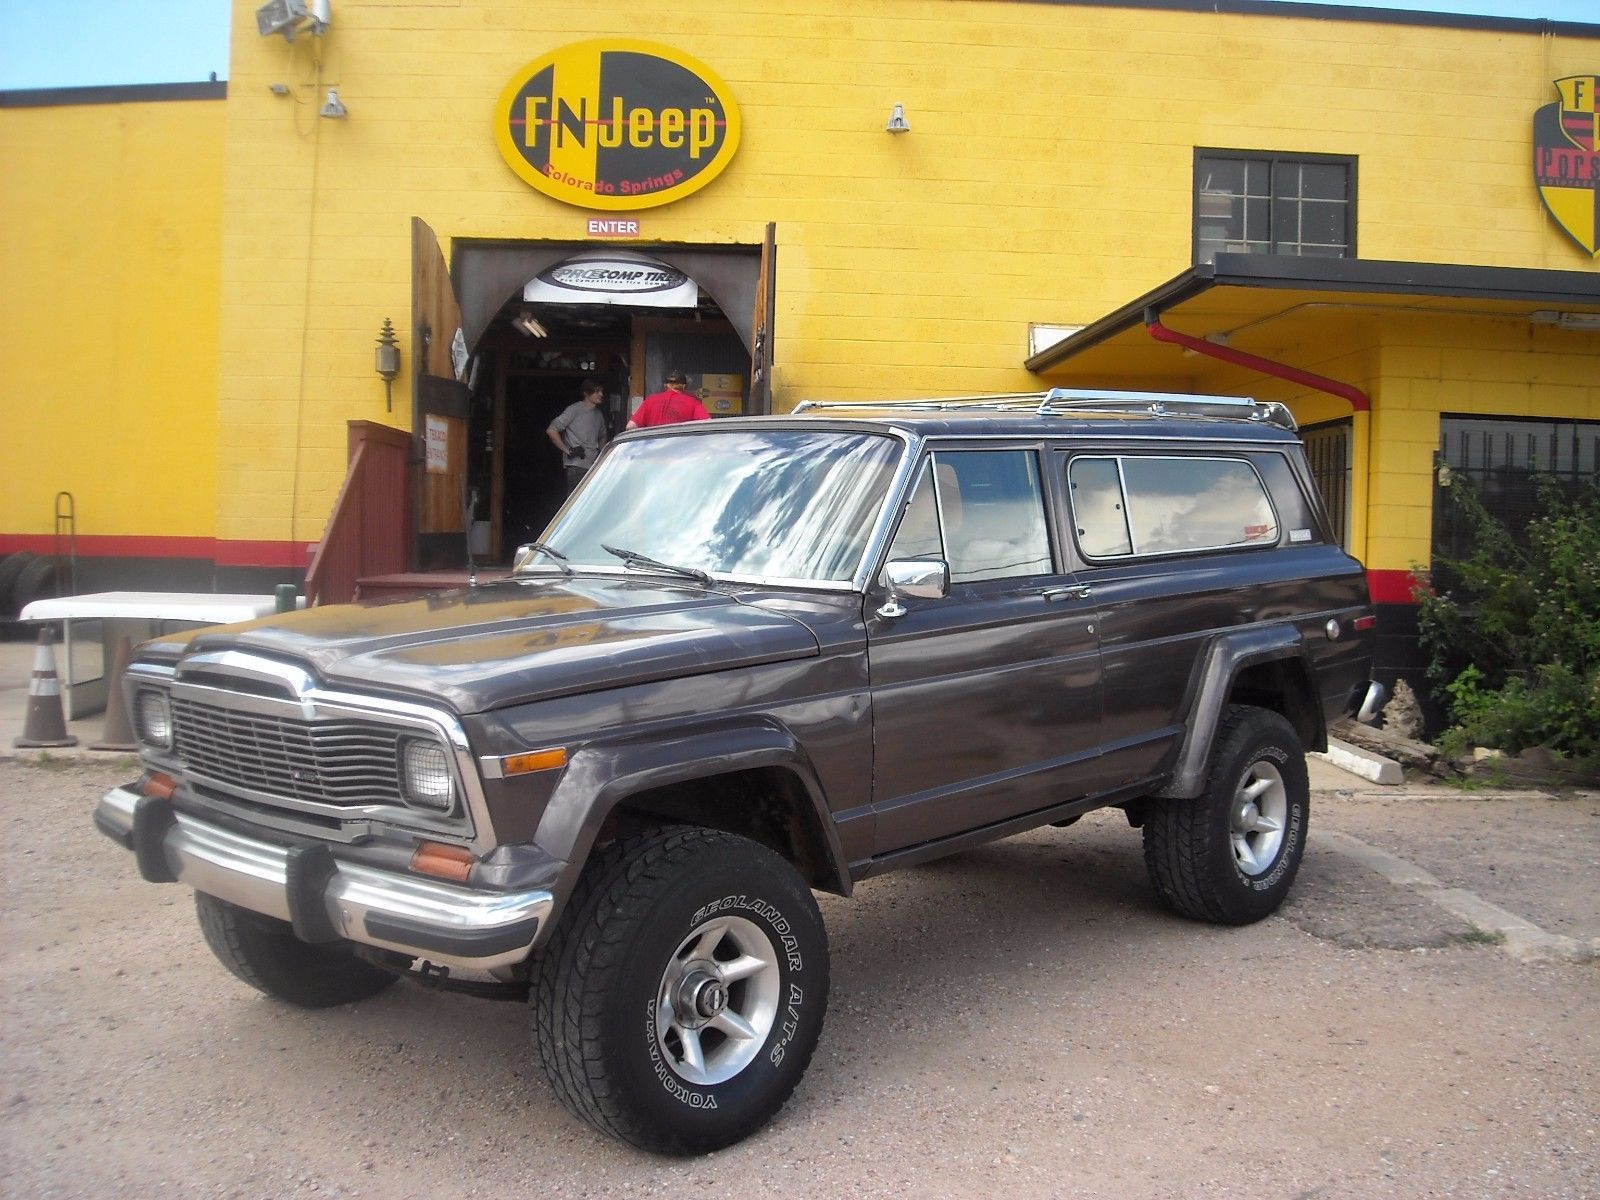 Ebay 1980 Jeep Cherokee Chief Laredo 1980 Jeep Cherokee Chief